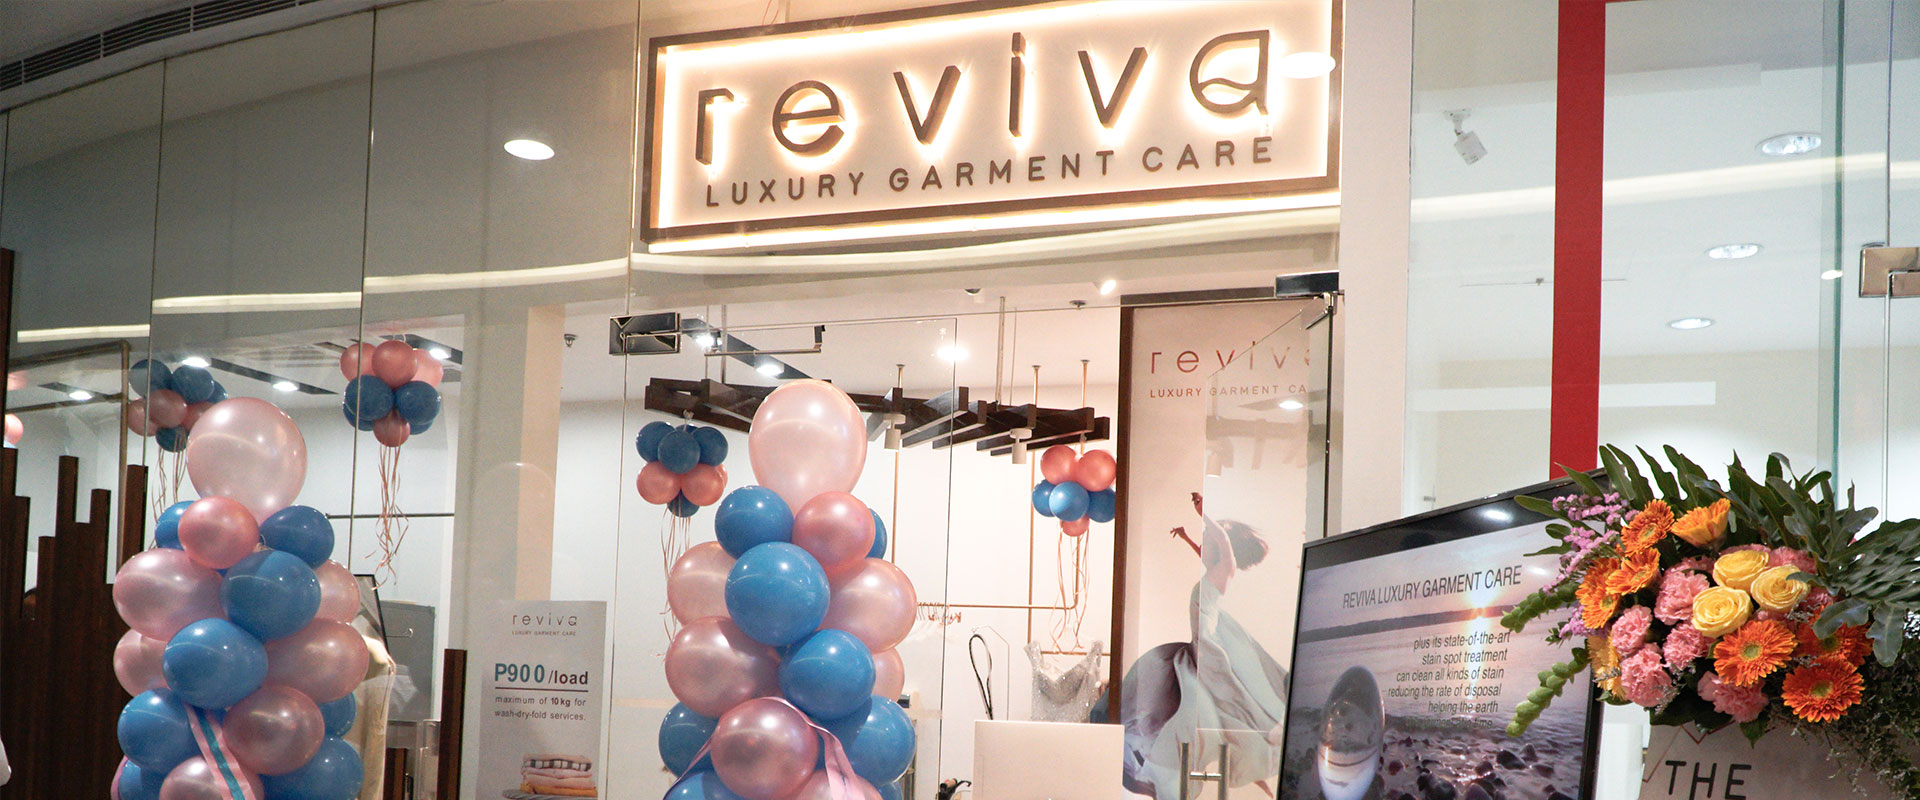 Reviva: The Fashion Movement To Sustainable Dry Cleaning!